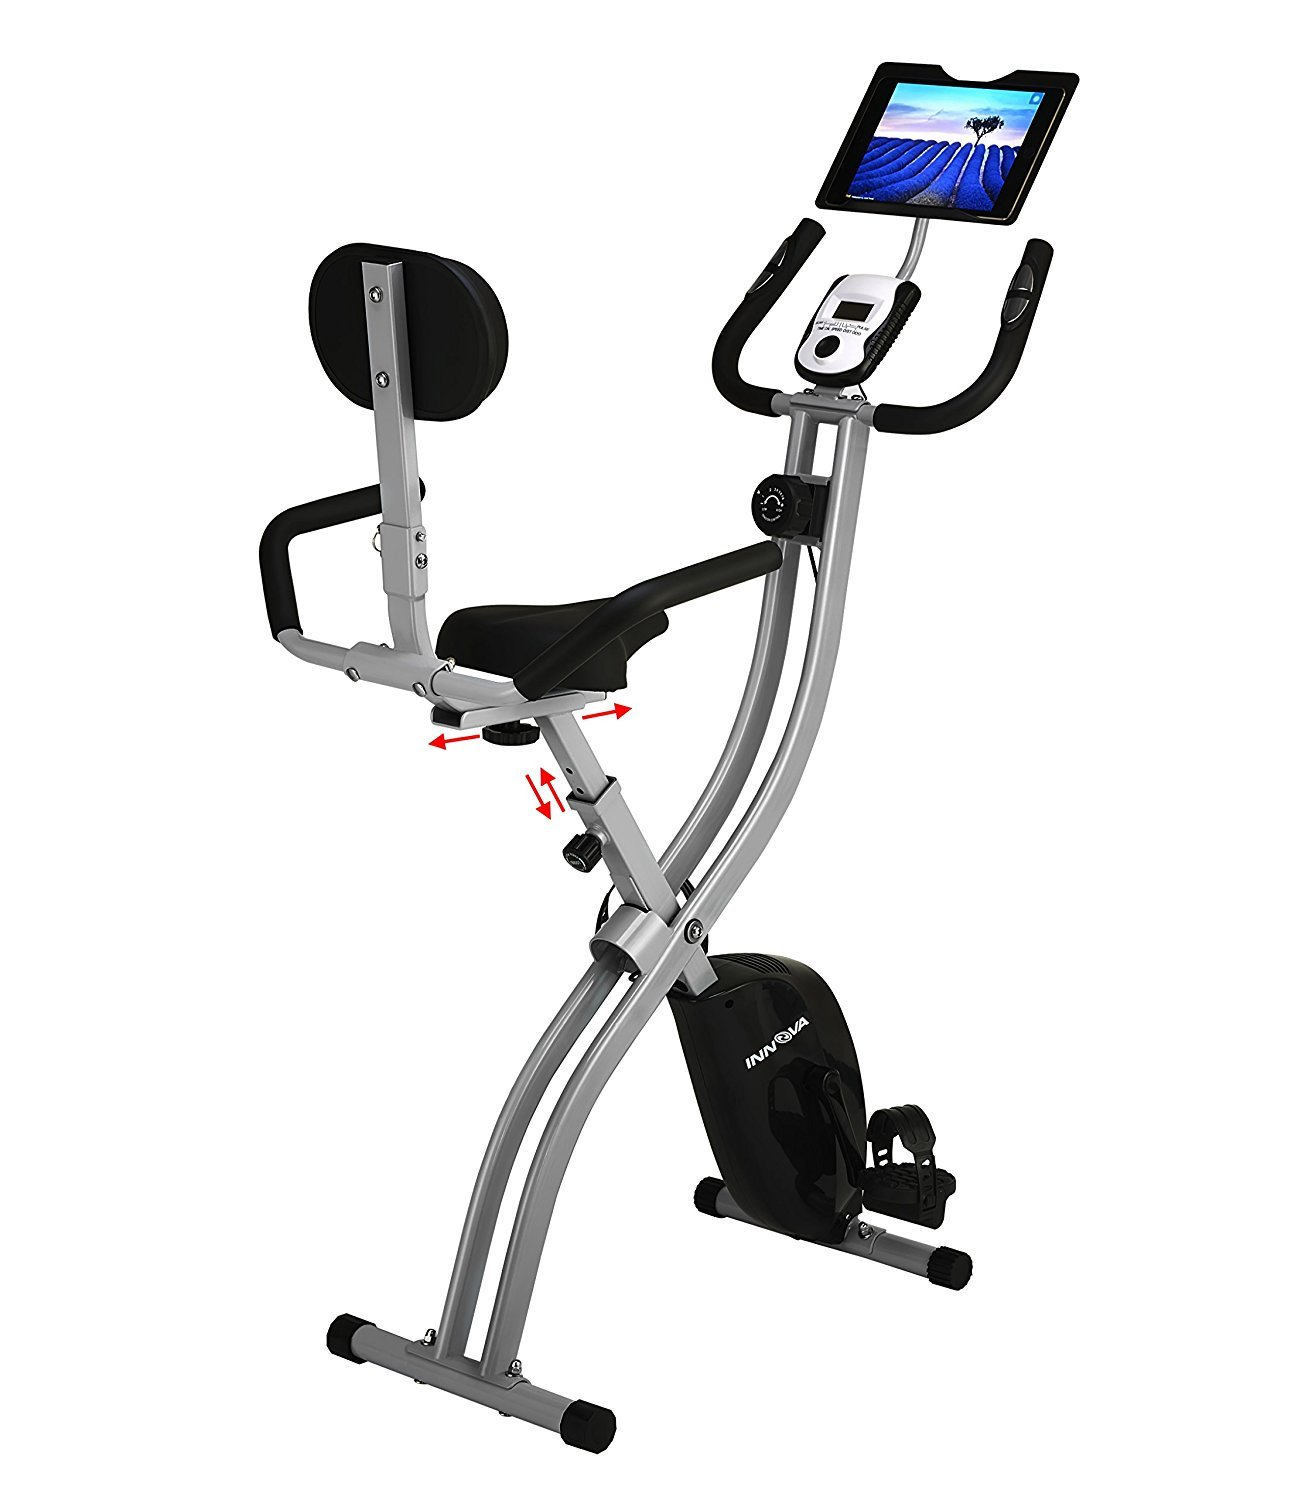 Innova XBR450 Folding Upright Bike with Backrest and iPad-Android Tablet Holder is shown here